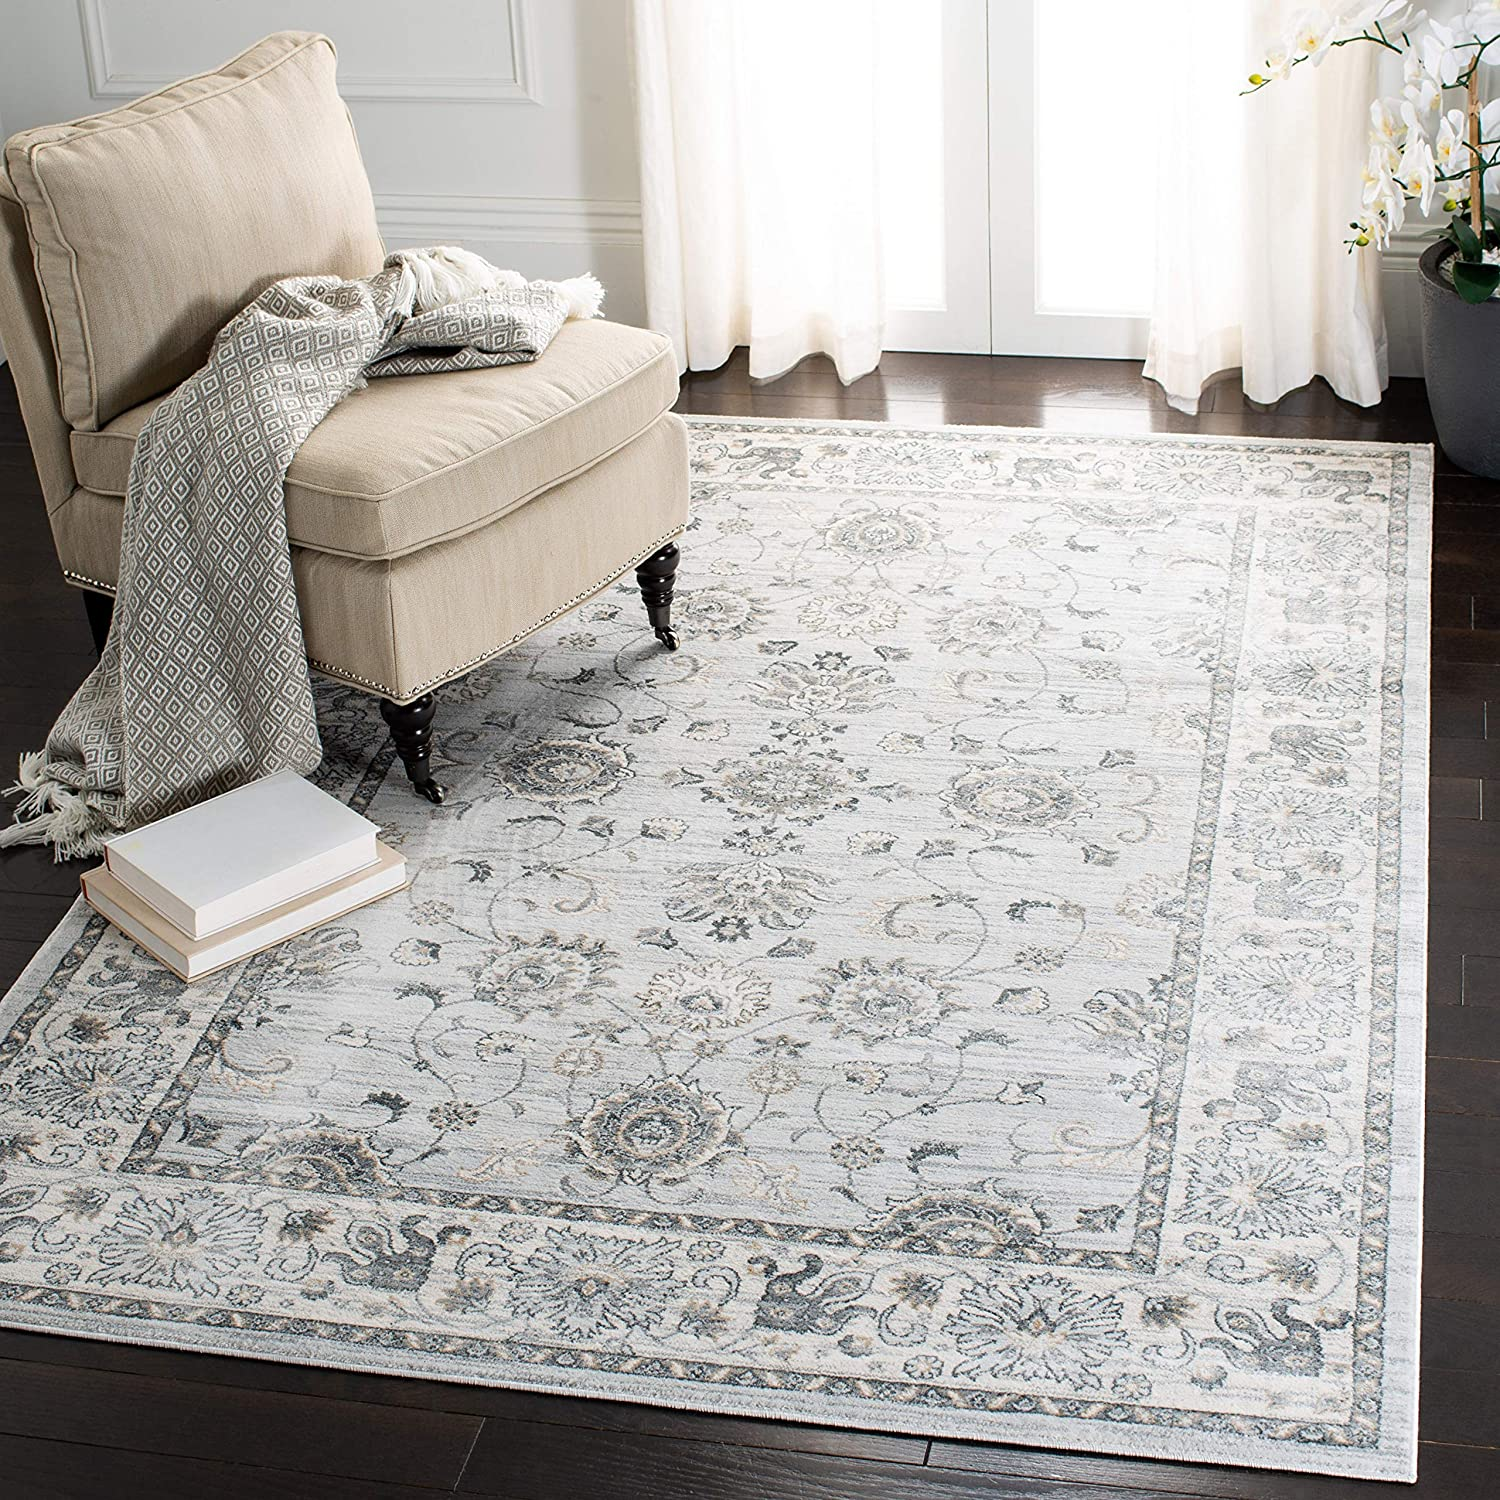 Safavieh Isabella Collection ISA940G Oriental Non-Shedding Stain Resistant Living Room Bedroom Area Rug, 3' x 5', Light Grey / Cream